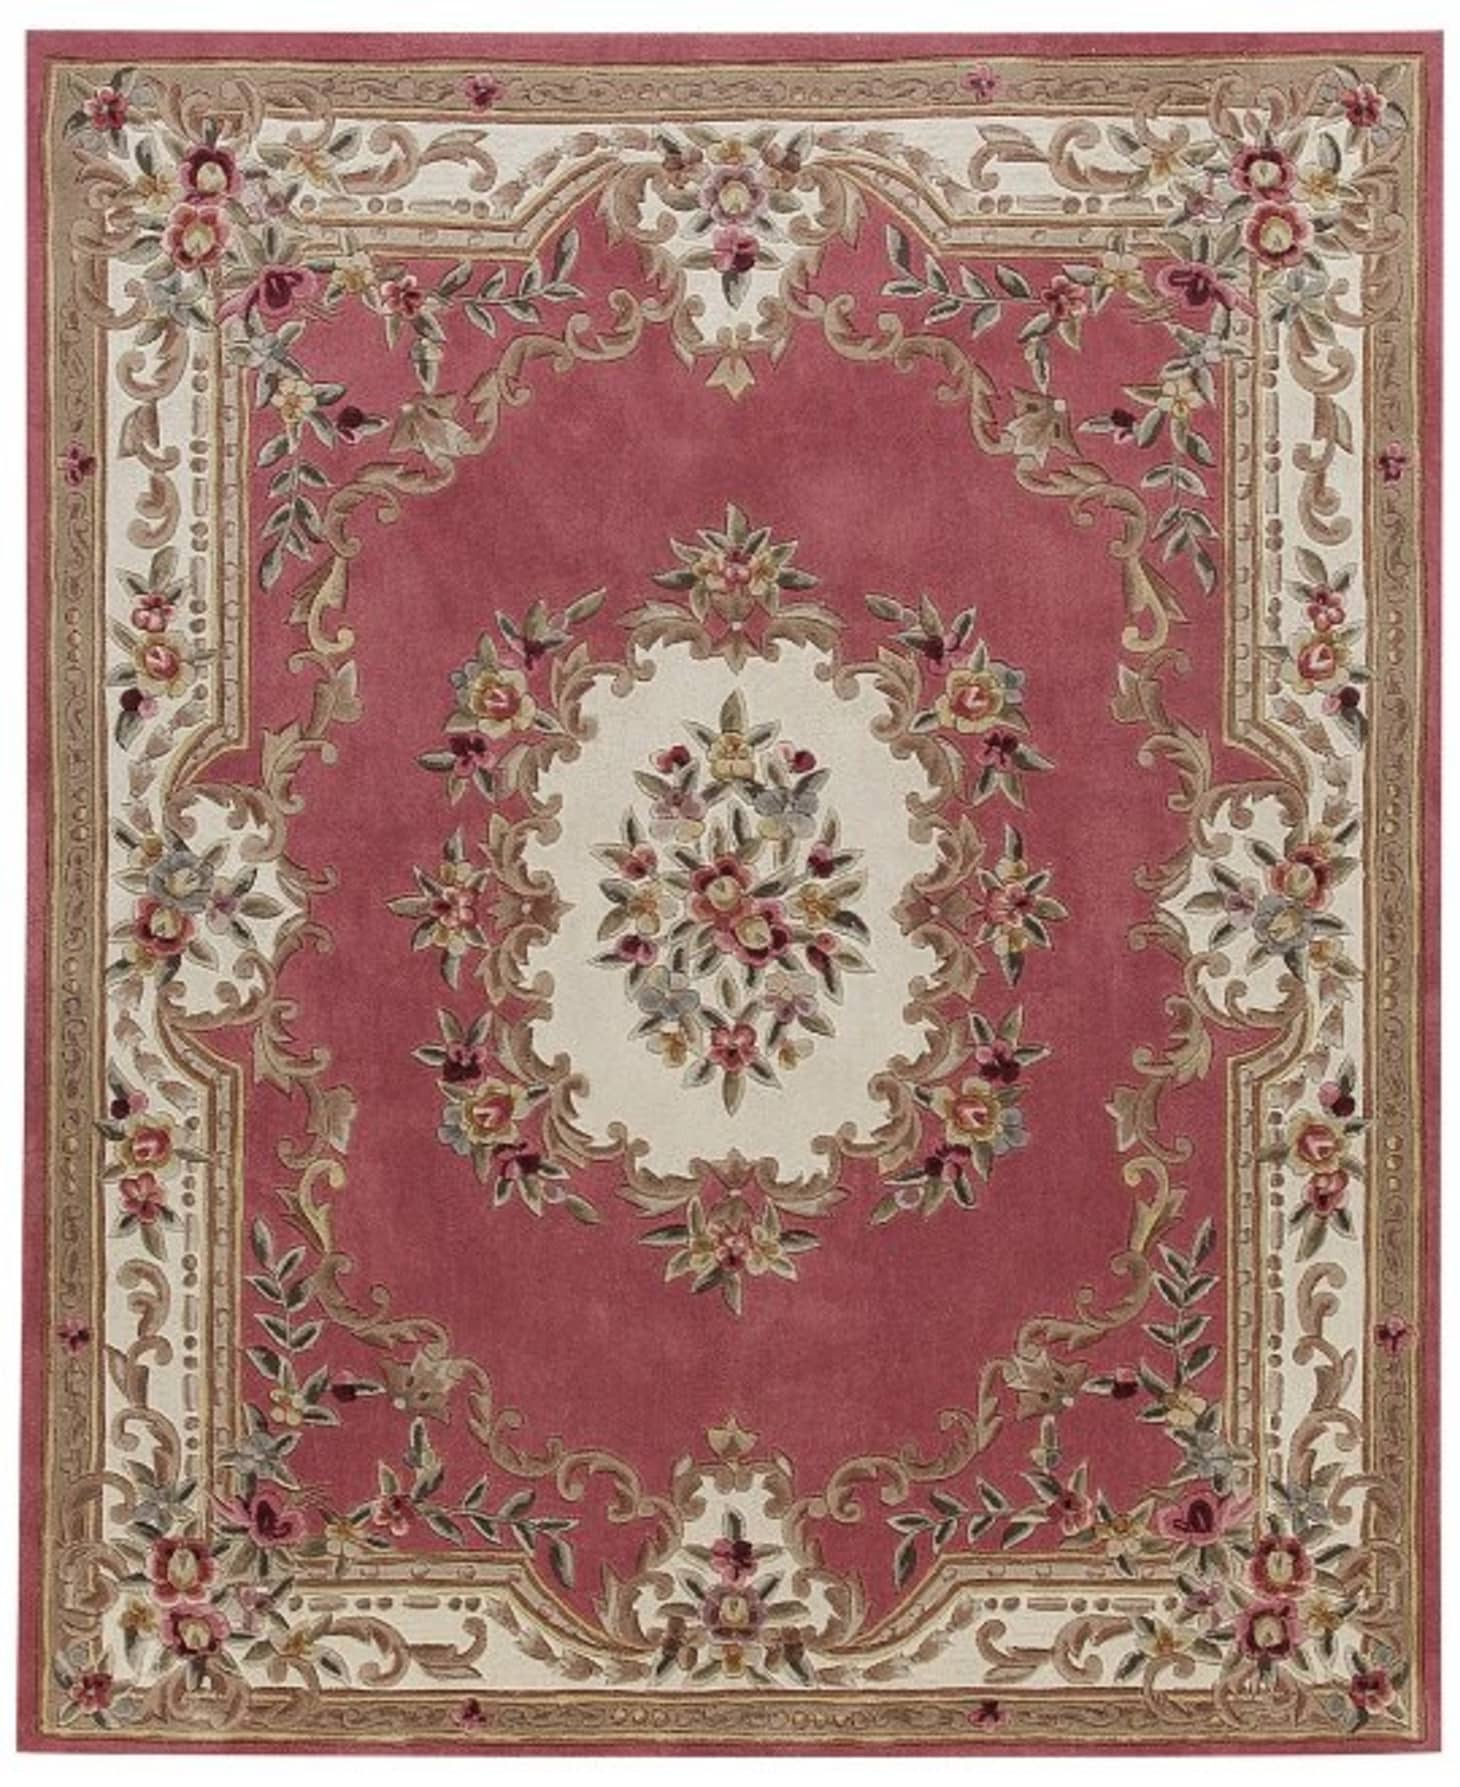 10 Styles Of Oriental Persian Rugs From Aubusson To